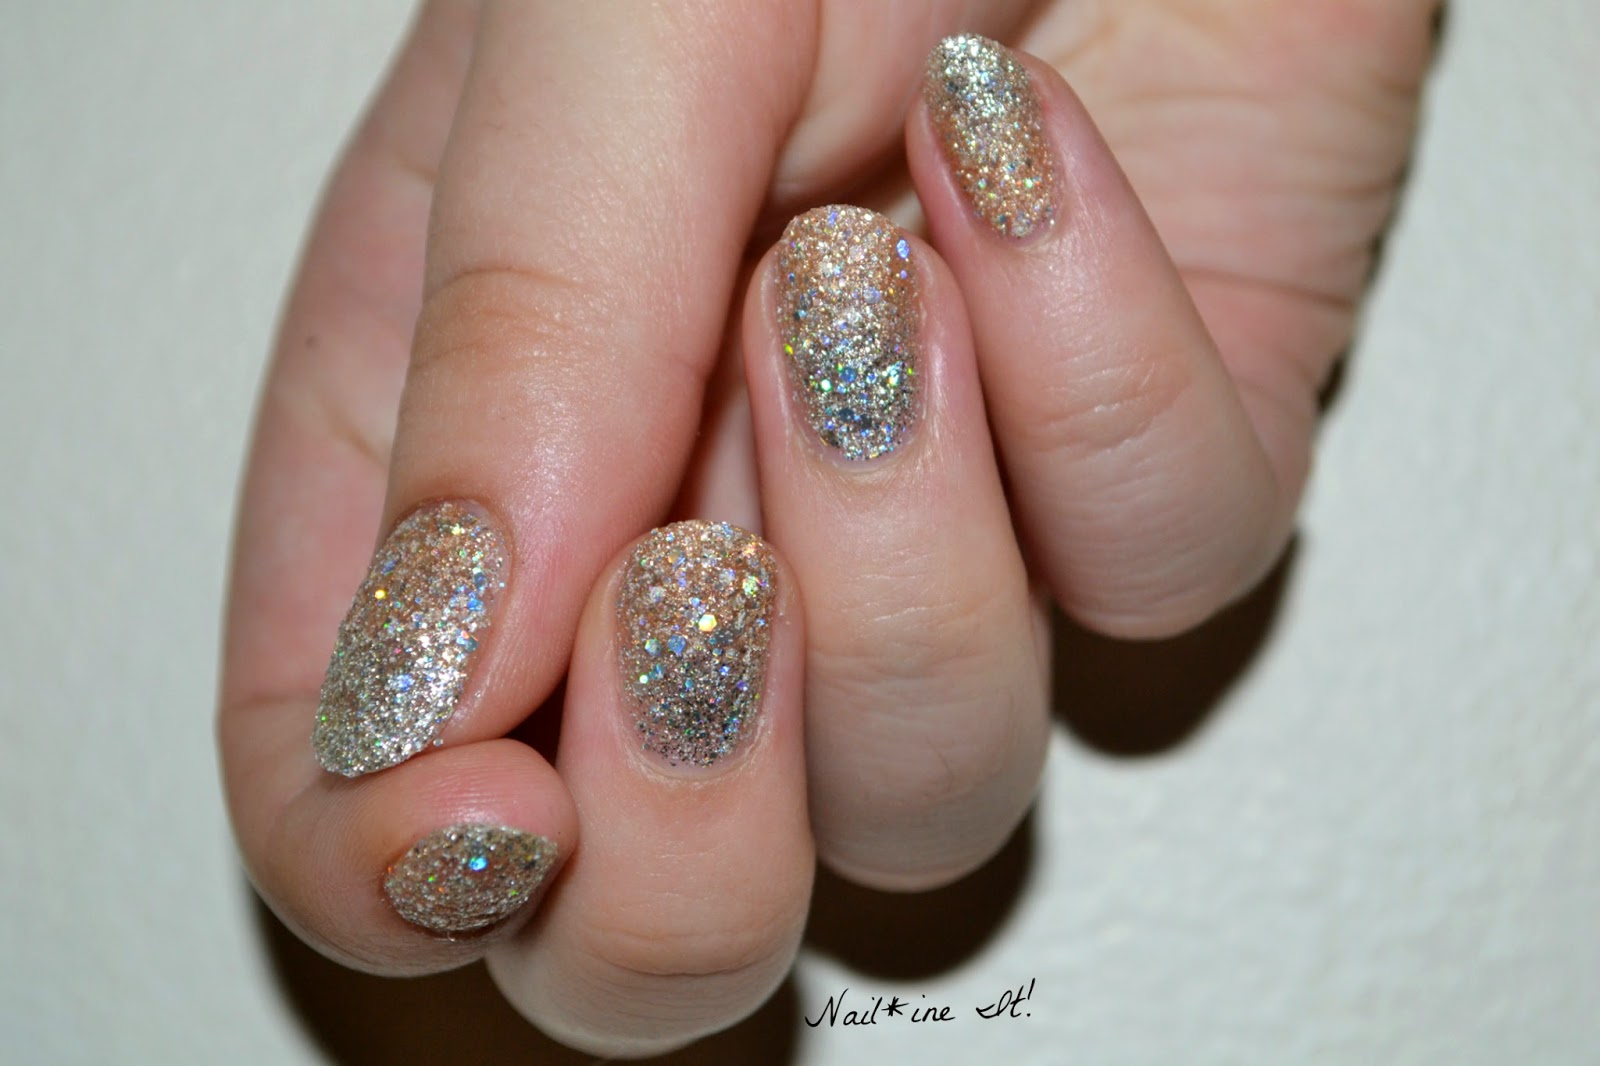 Nail*ine It!: Subtle Gradient featuring Zoya Cosmo & Bar Magical ...